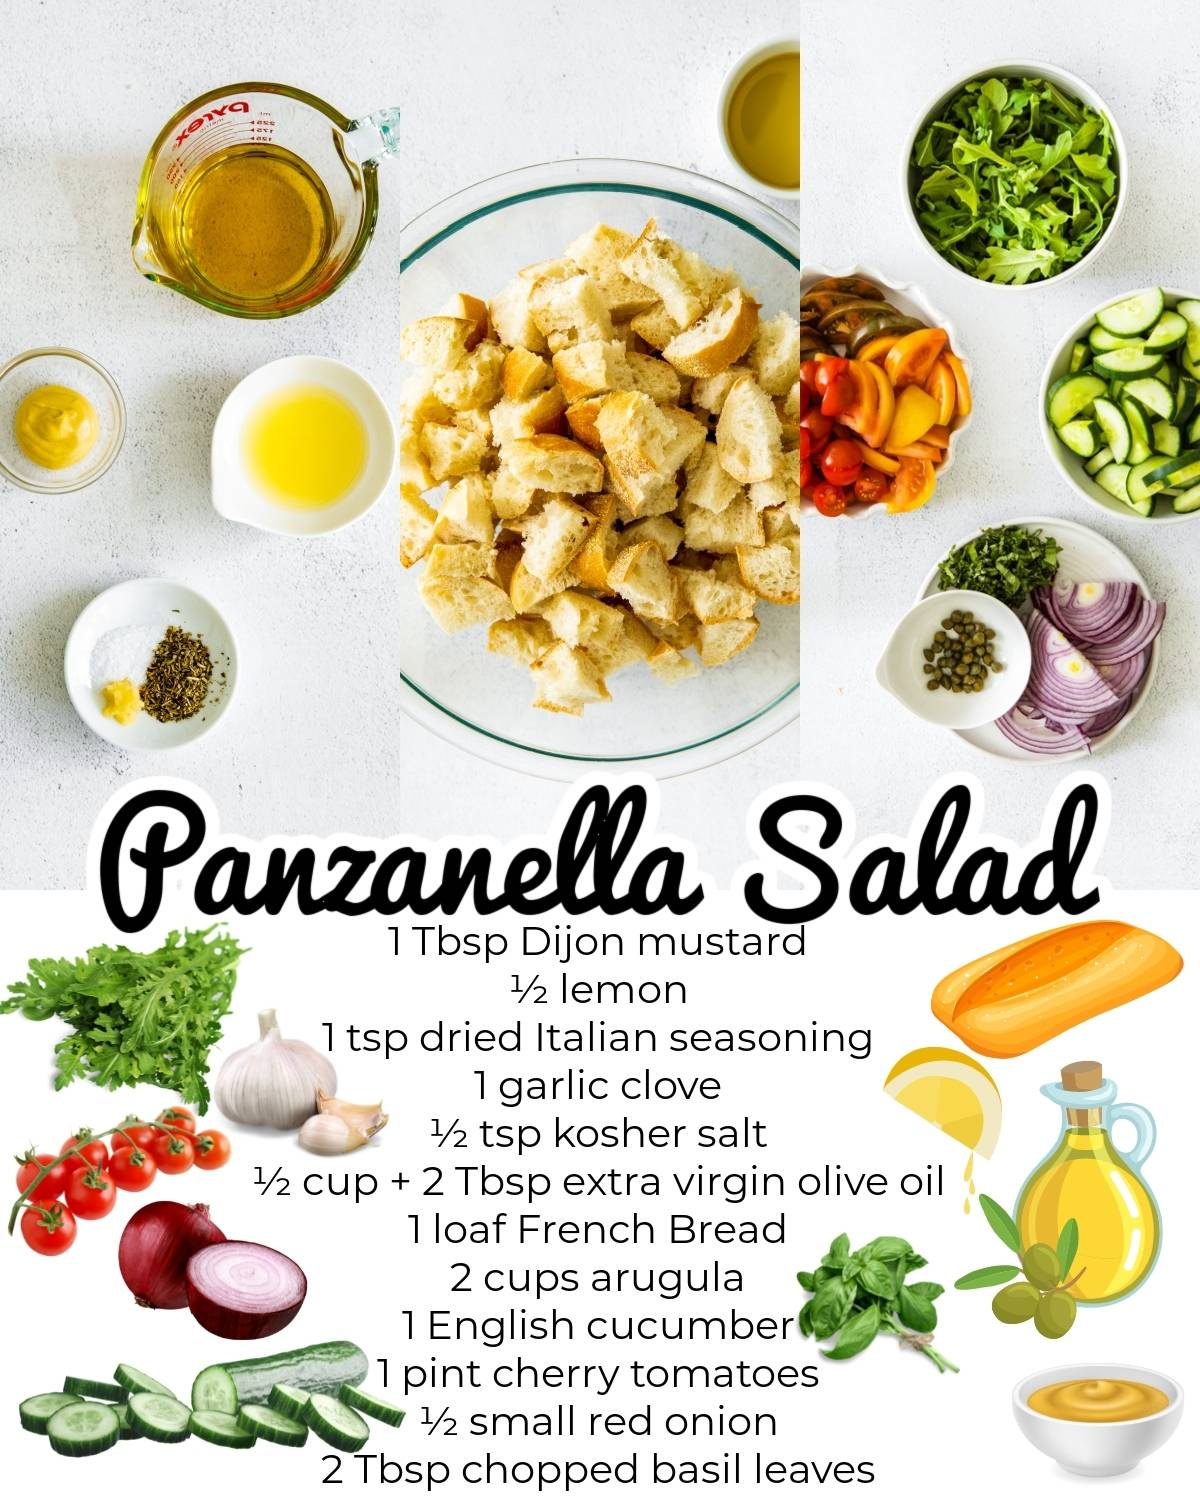 All of the ingredients needed to make this Panzanella Salad recipe.